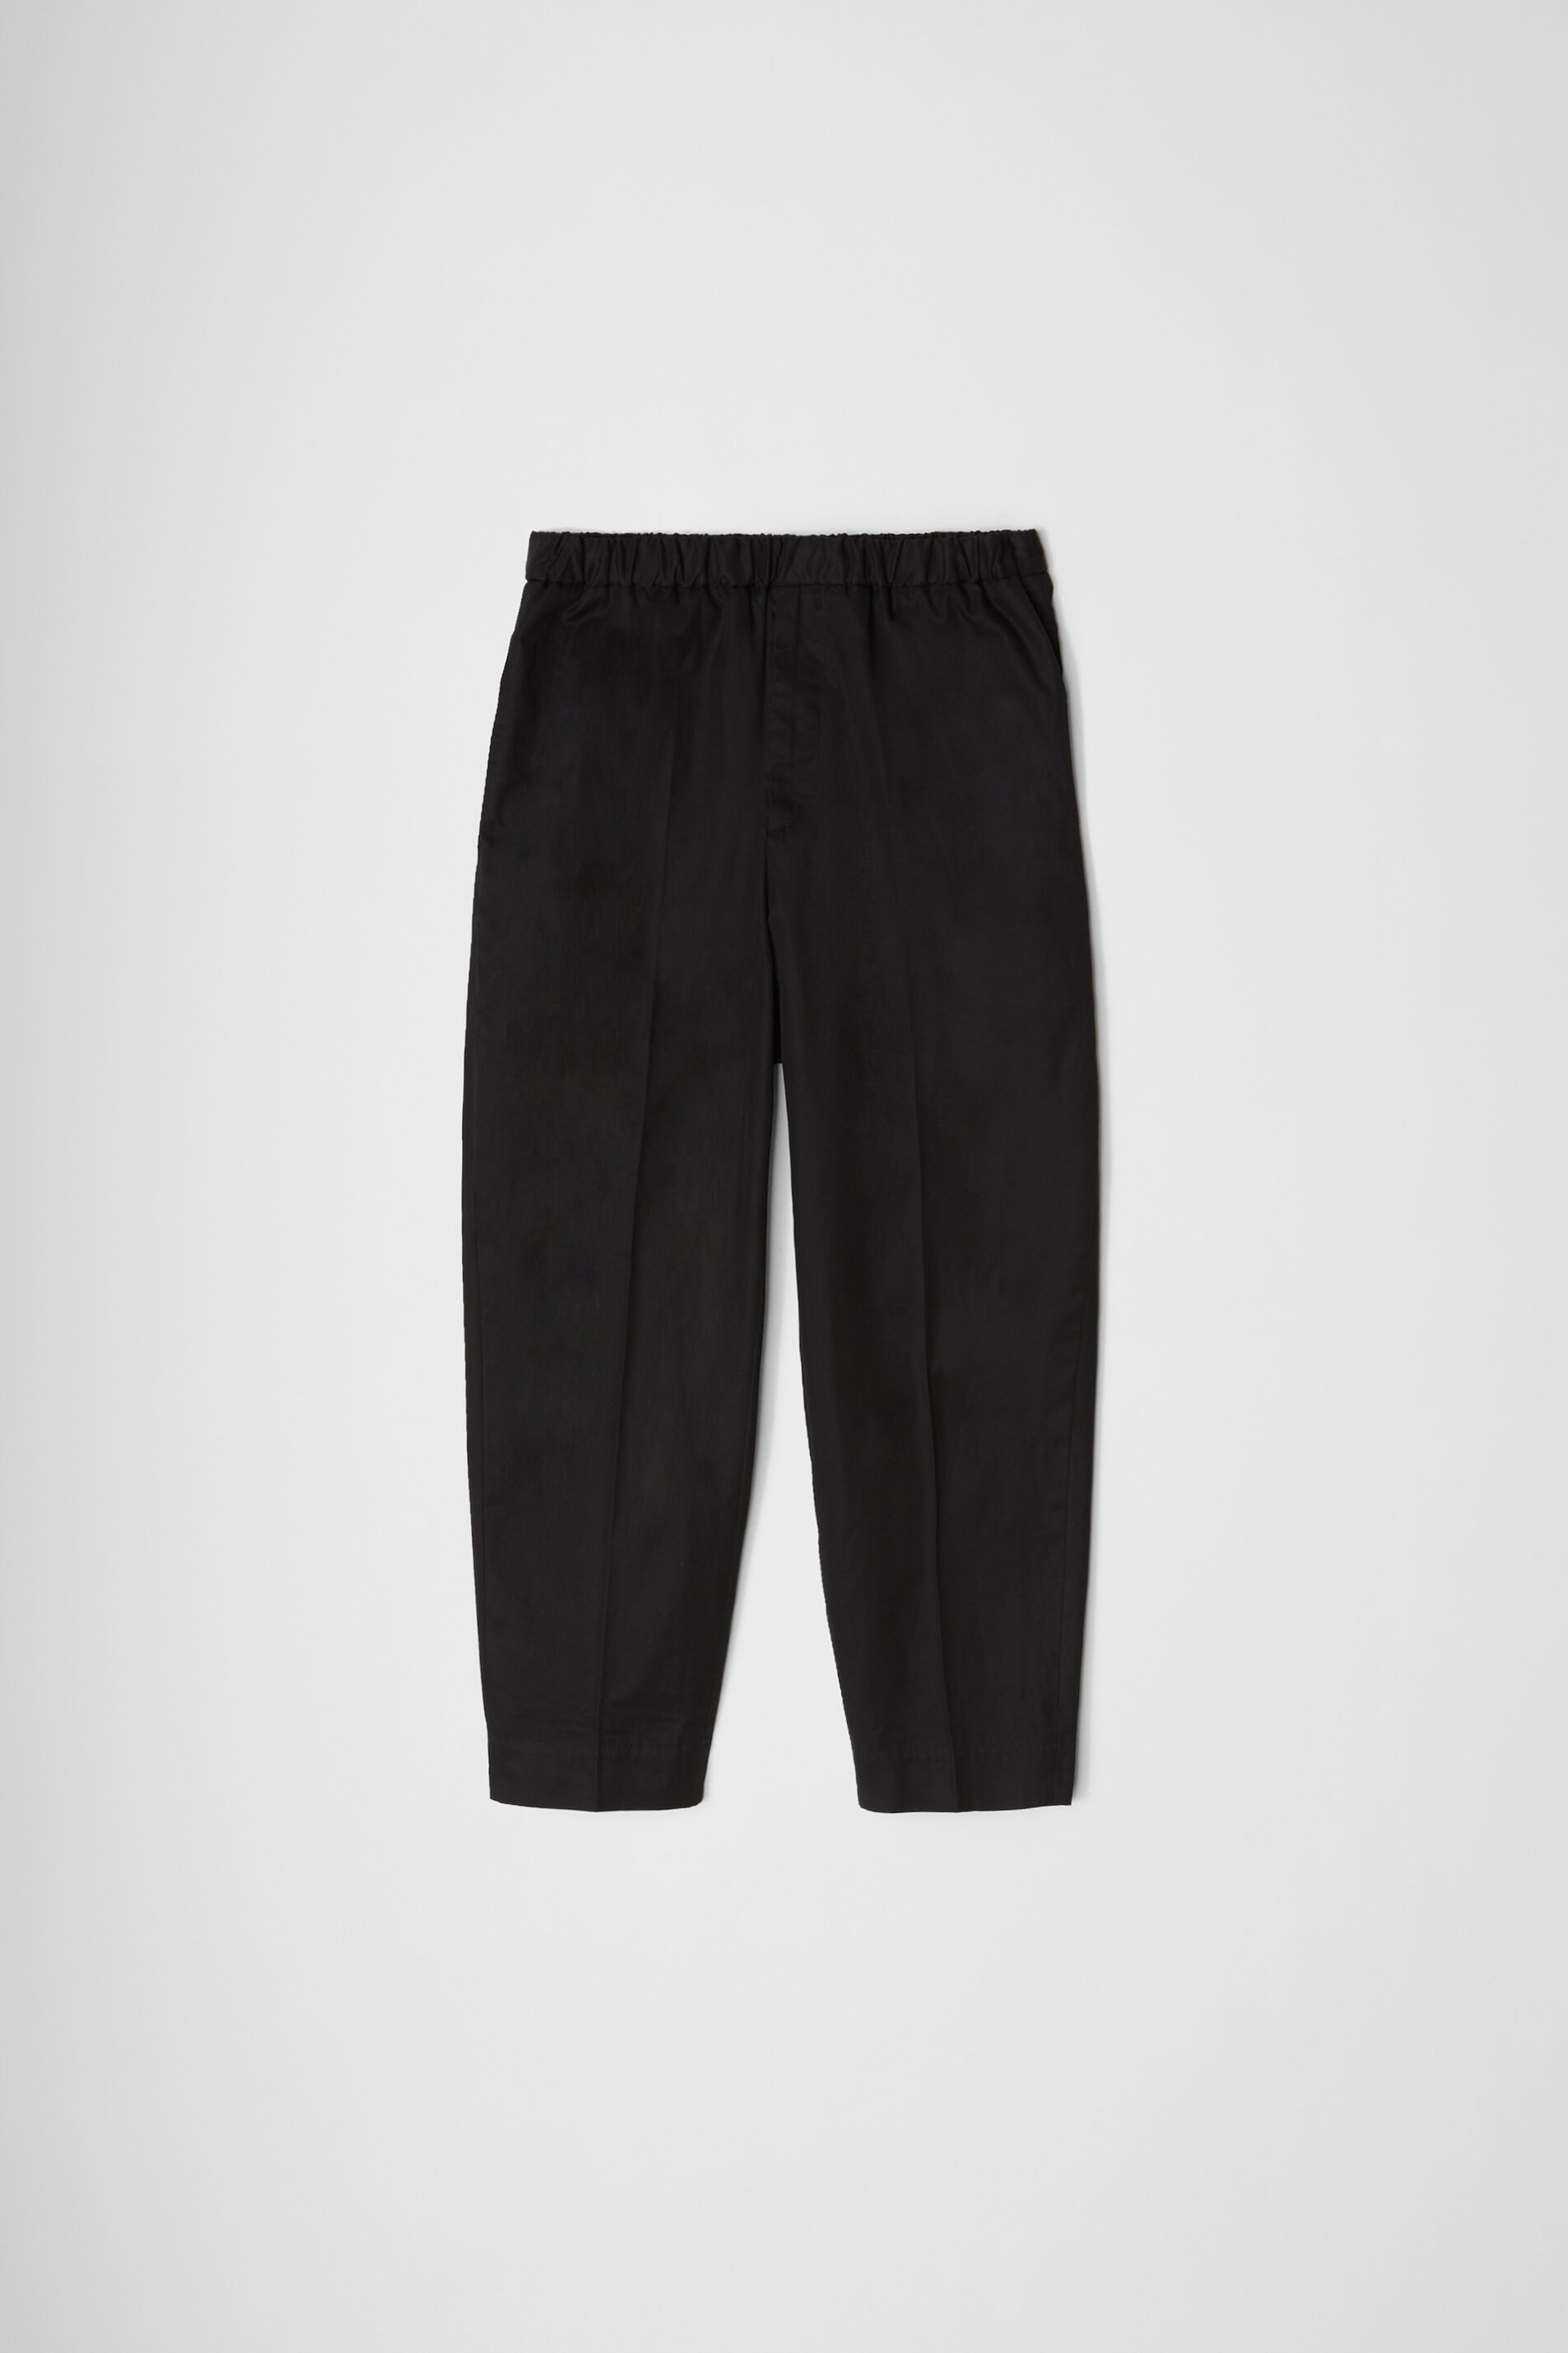 Trousers, black, large